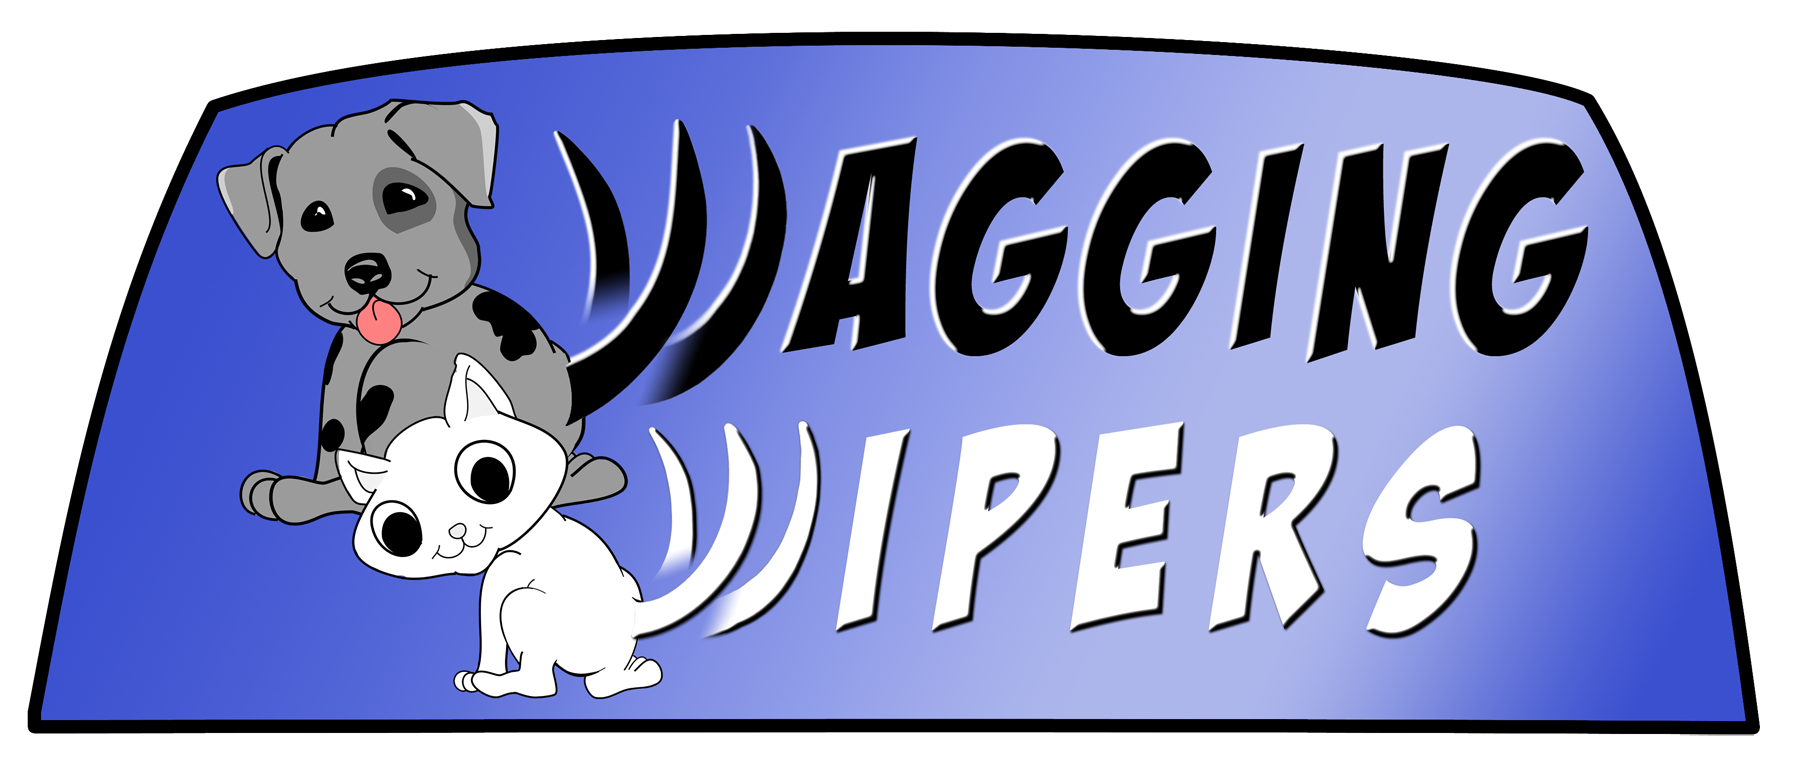 Wagging wipers llc